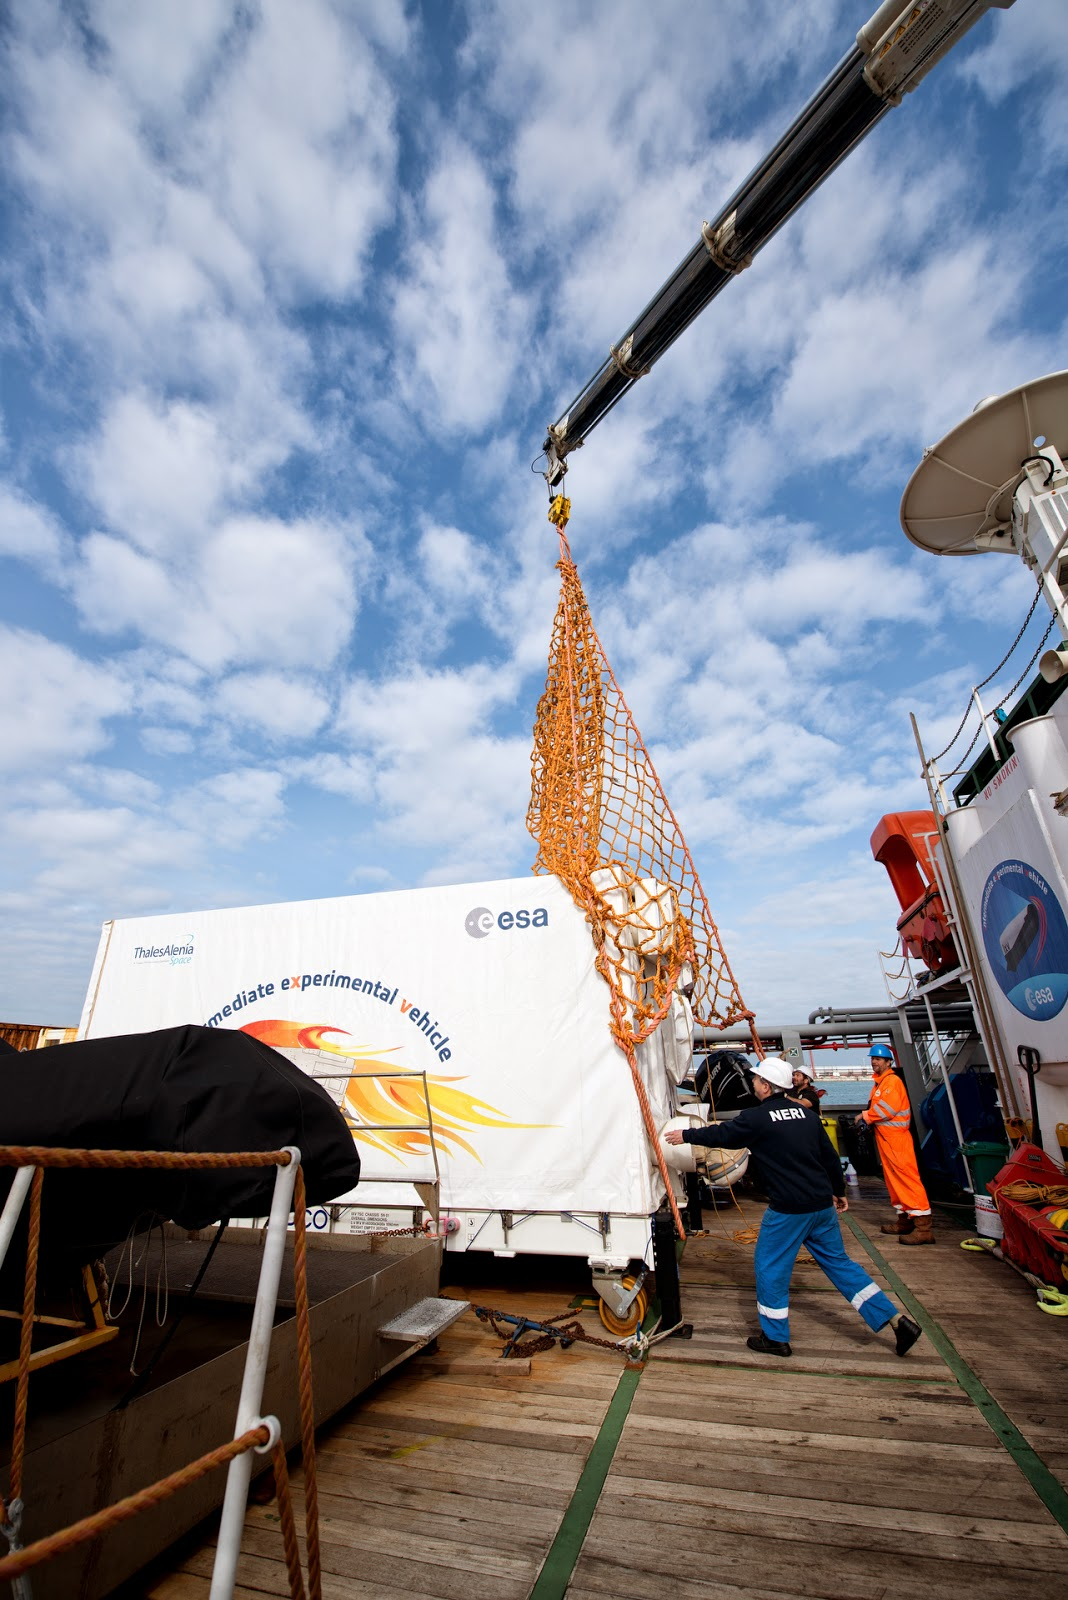 ESA's recovered IXV spaceplane arrived at the Port of Livorno in Italy on 26 March 2015 and will be taken to Turin for final analysis. Credit: ESA